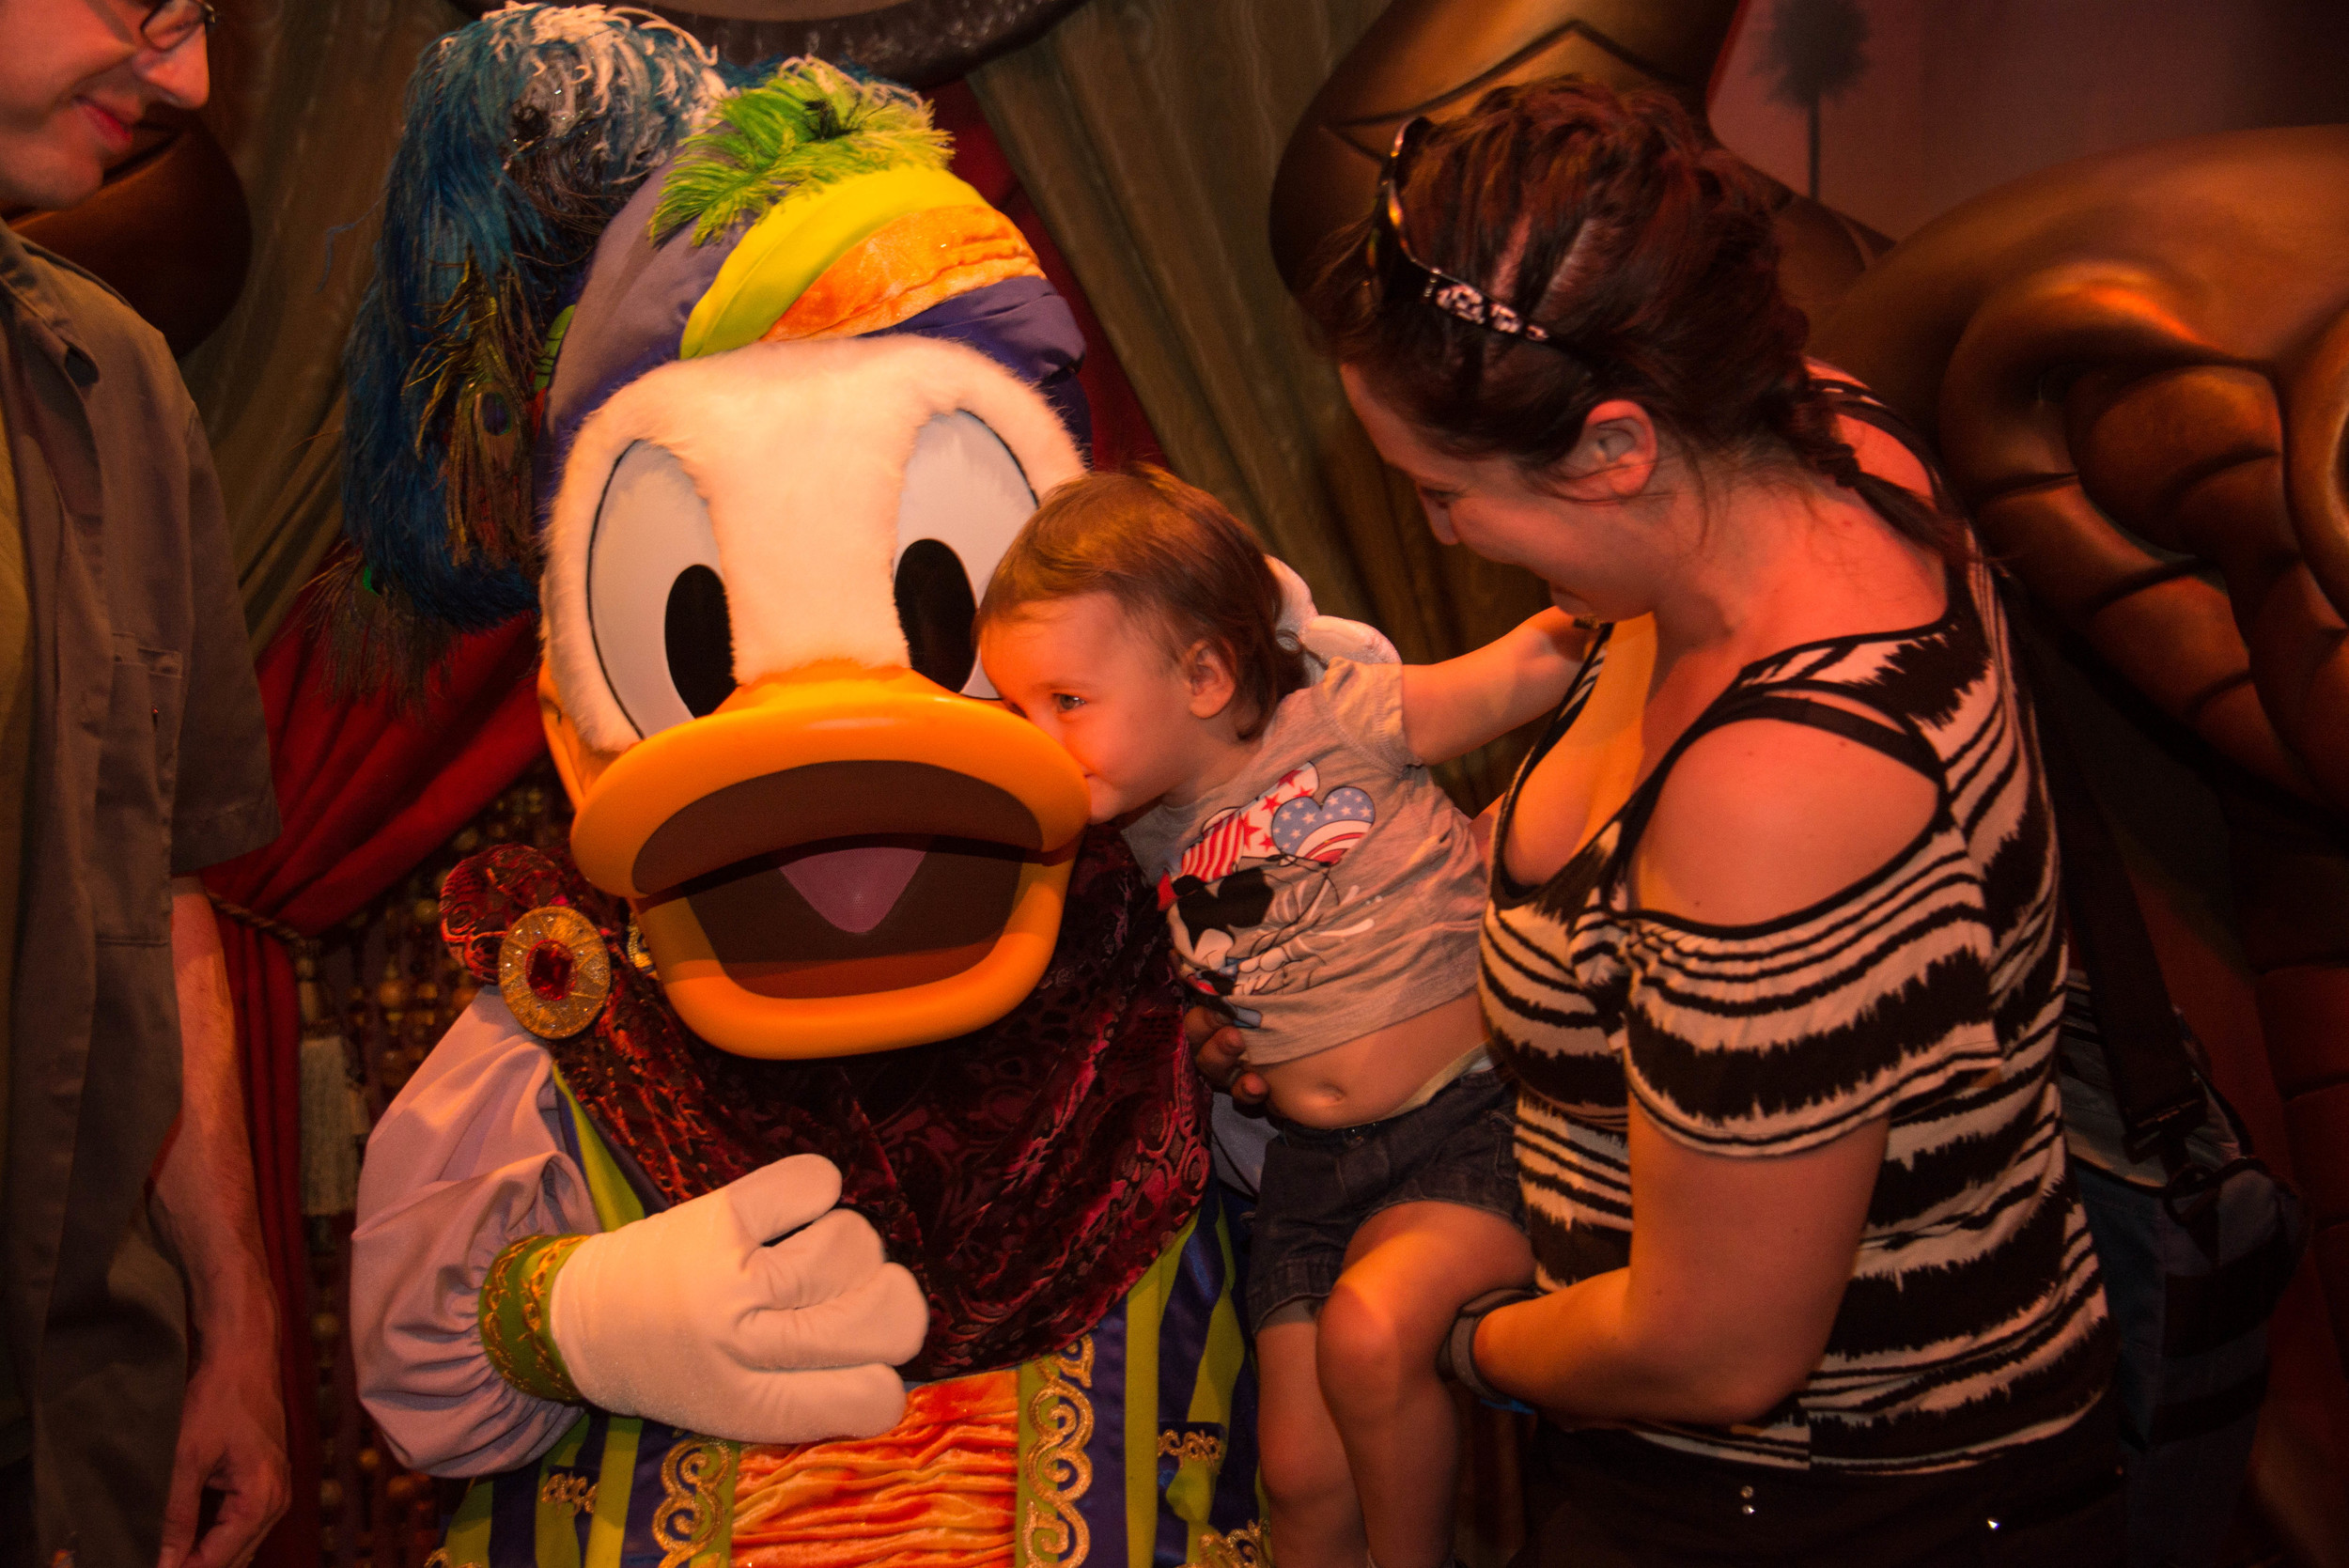 Donald must be special, he's the only one who got a Kiss